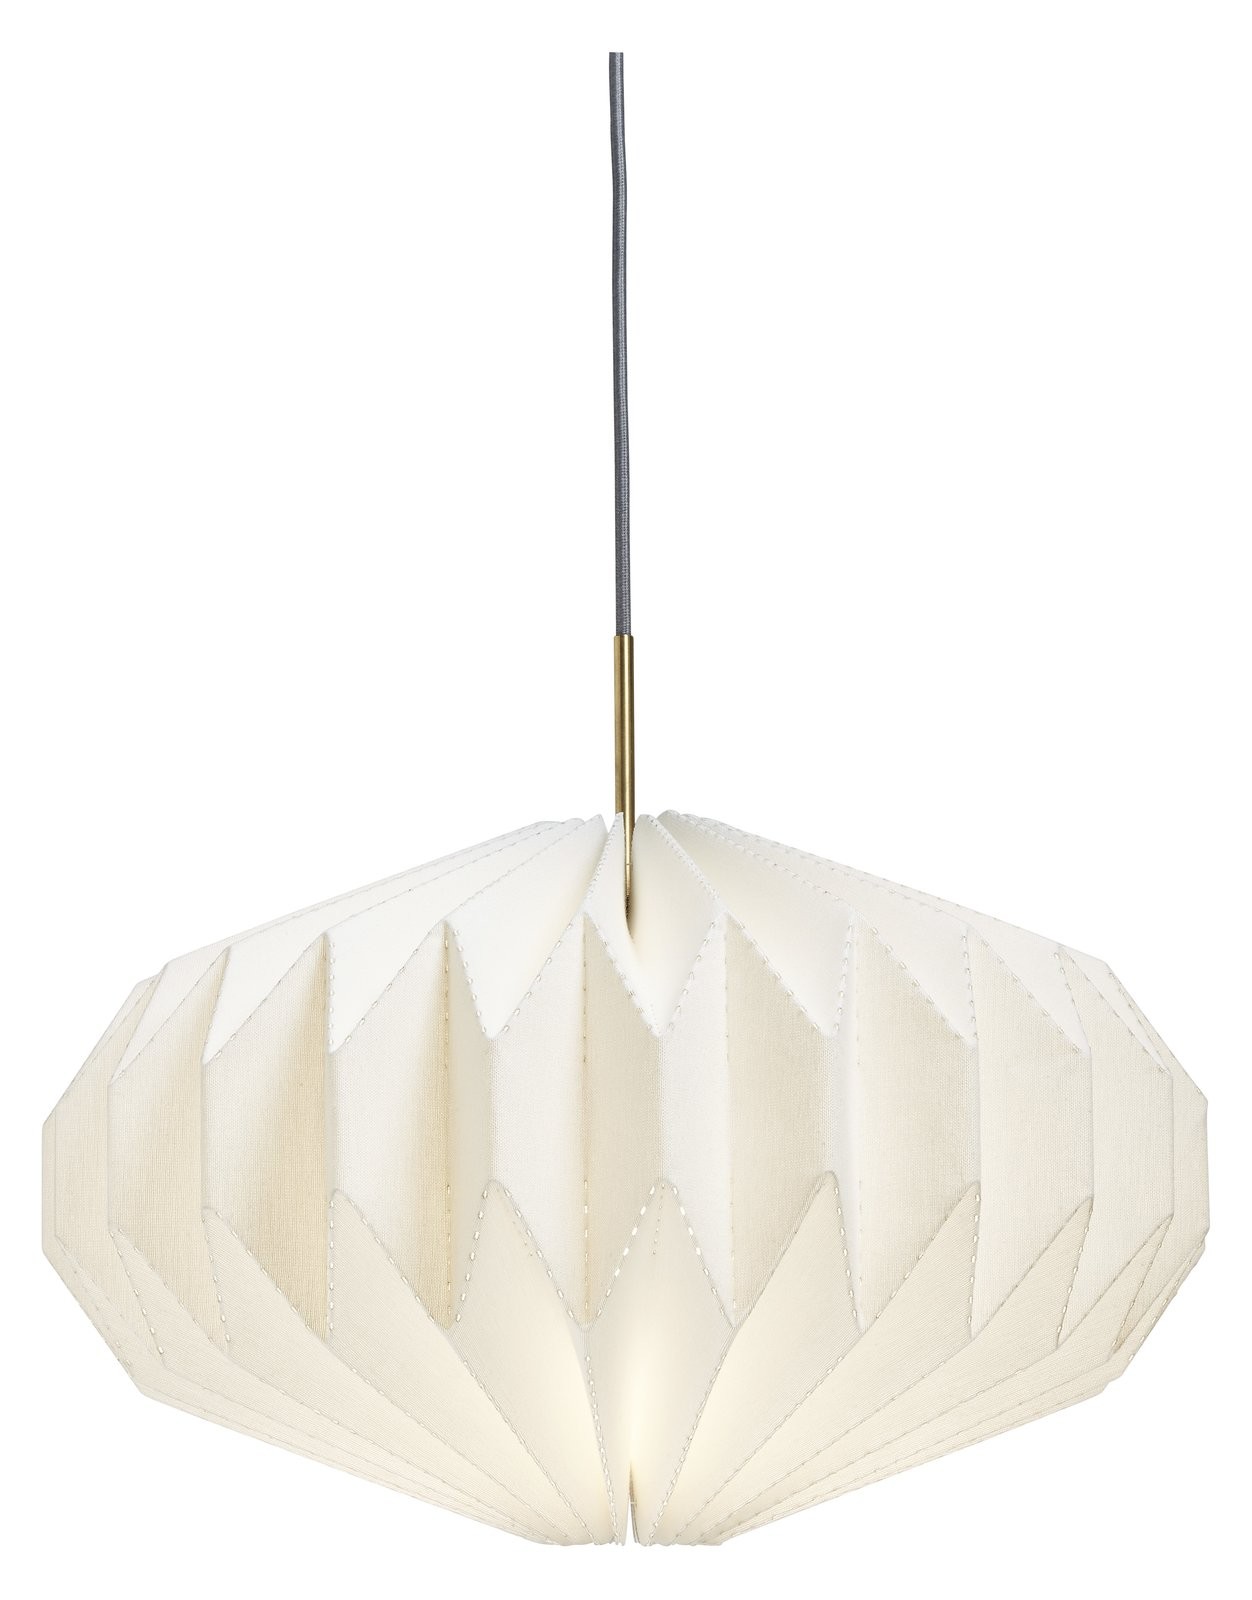 Orikata Saucer Pendant (2017) Room & Board In partnership with The California Workshop, in Costa Mesa, Room & Board just launched this pendant, which is laser-cut and then folded by hand by one to two people. The Minneapolis company, founded in 1980, projects sales of up to 900 units this year.